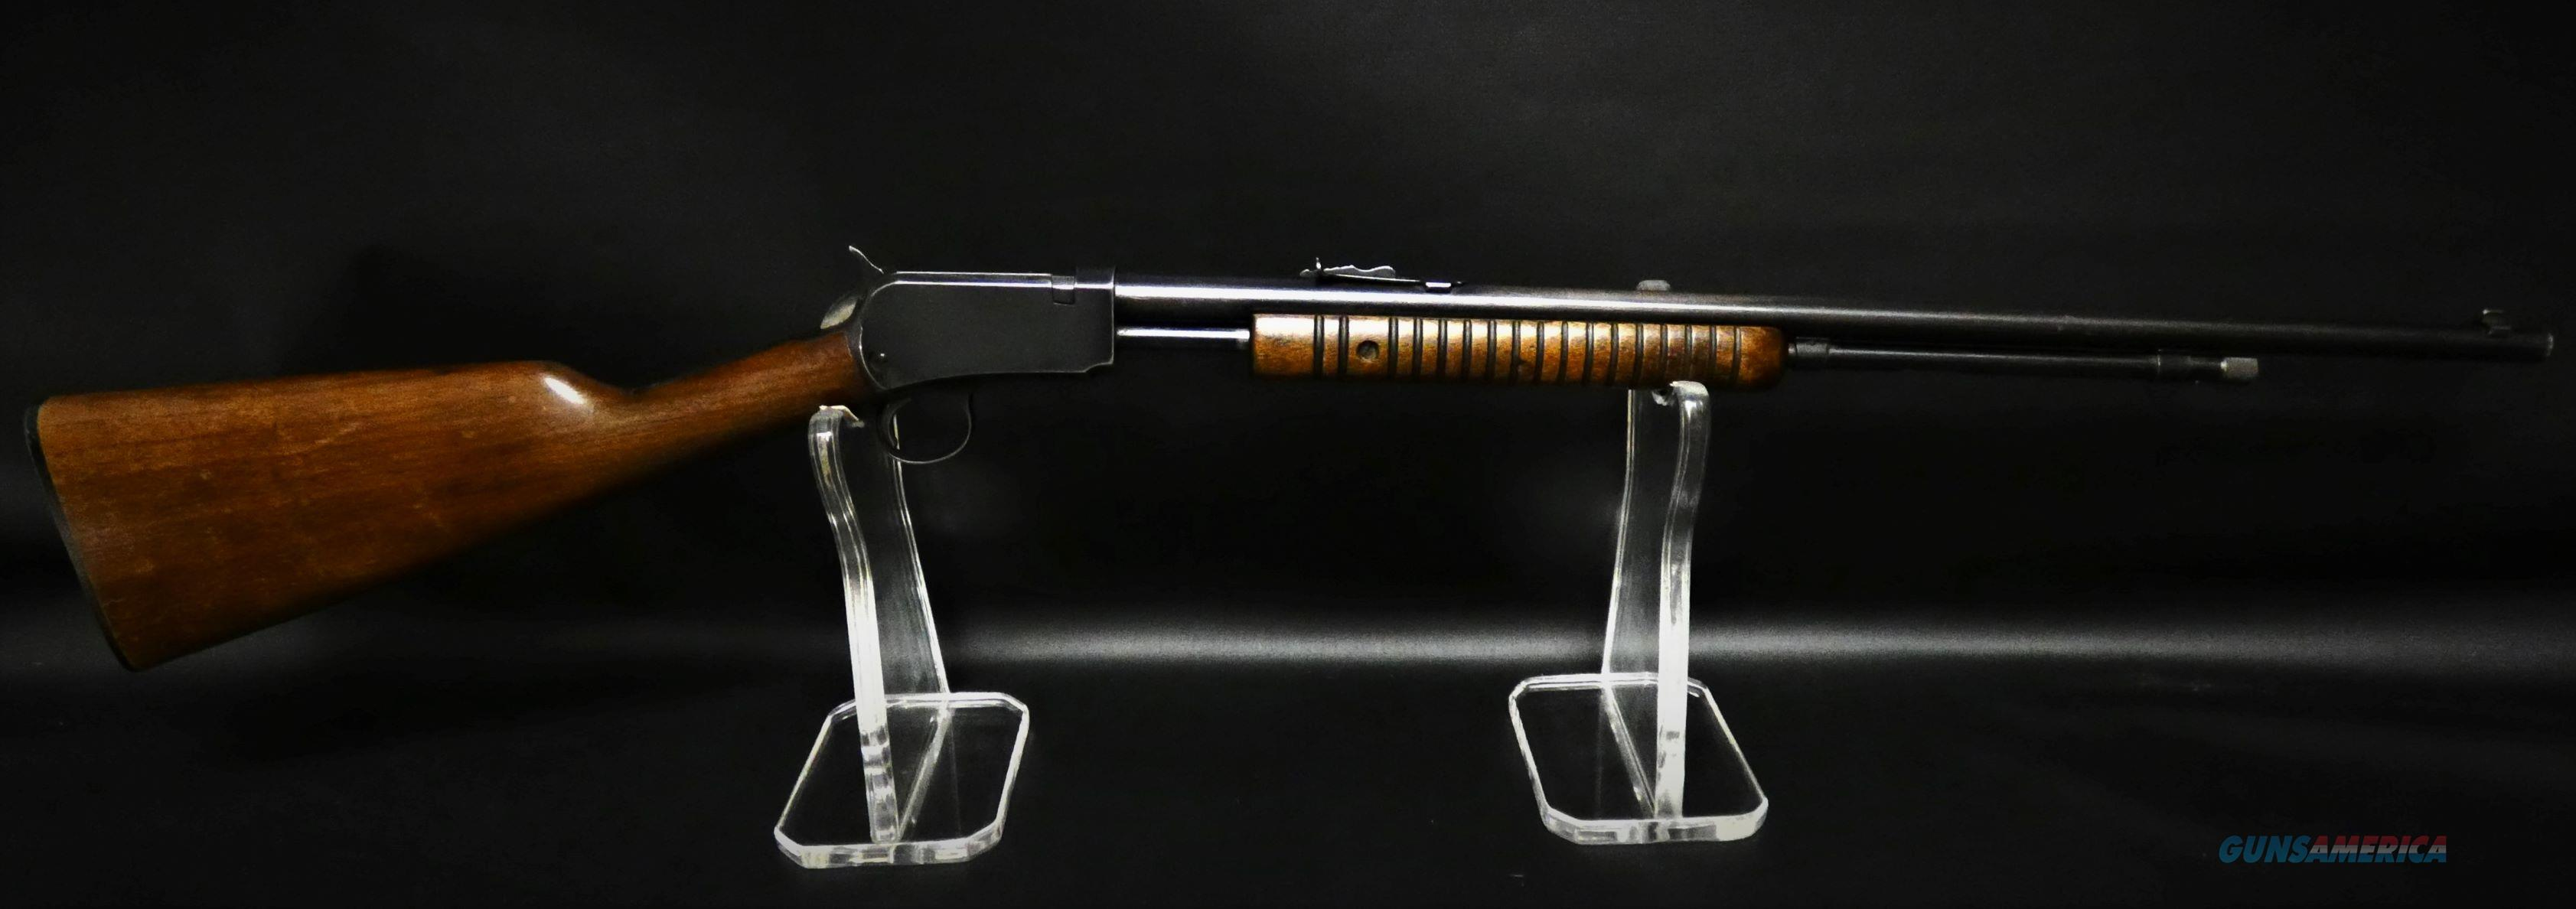 Winchester Model 62A Pump Action Rifle .22 S, L or LR  Guns > Rifles > Winchester Rifles - Modern Pump